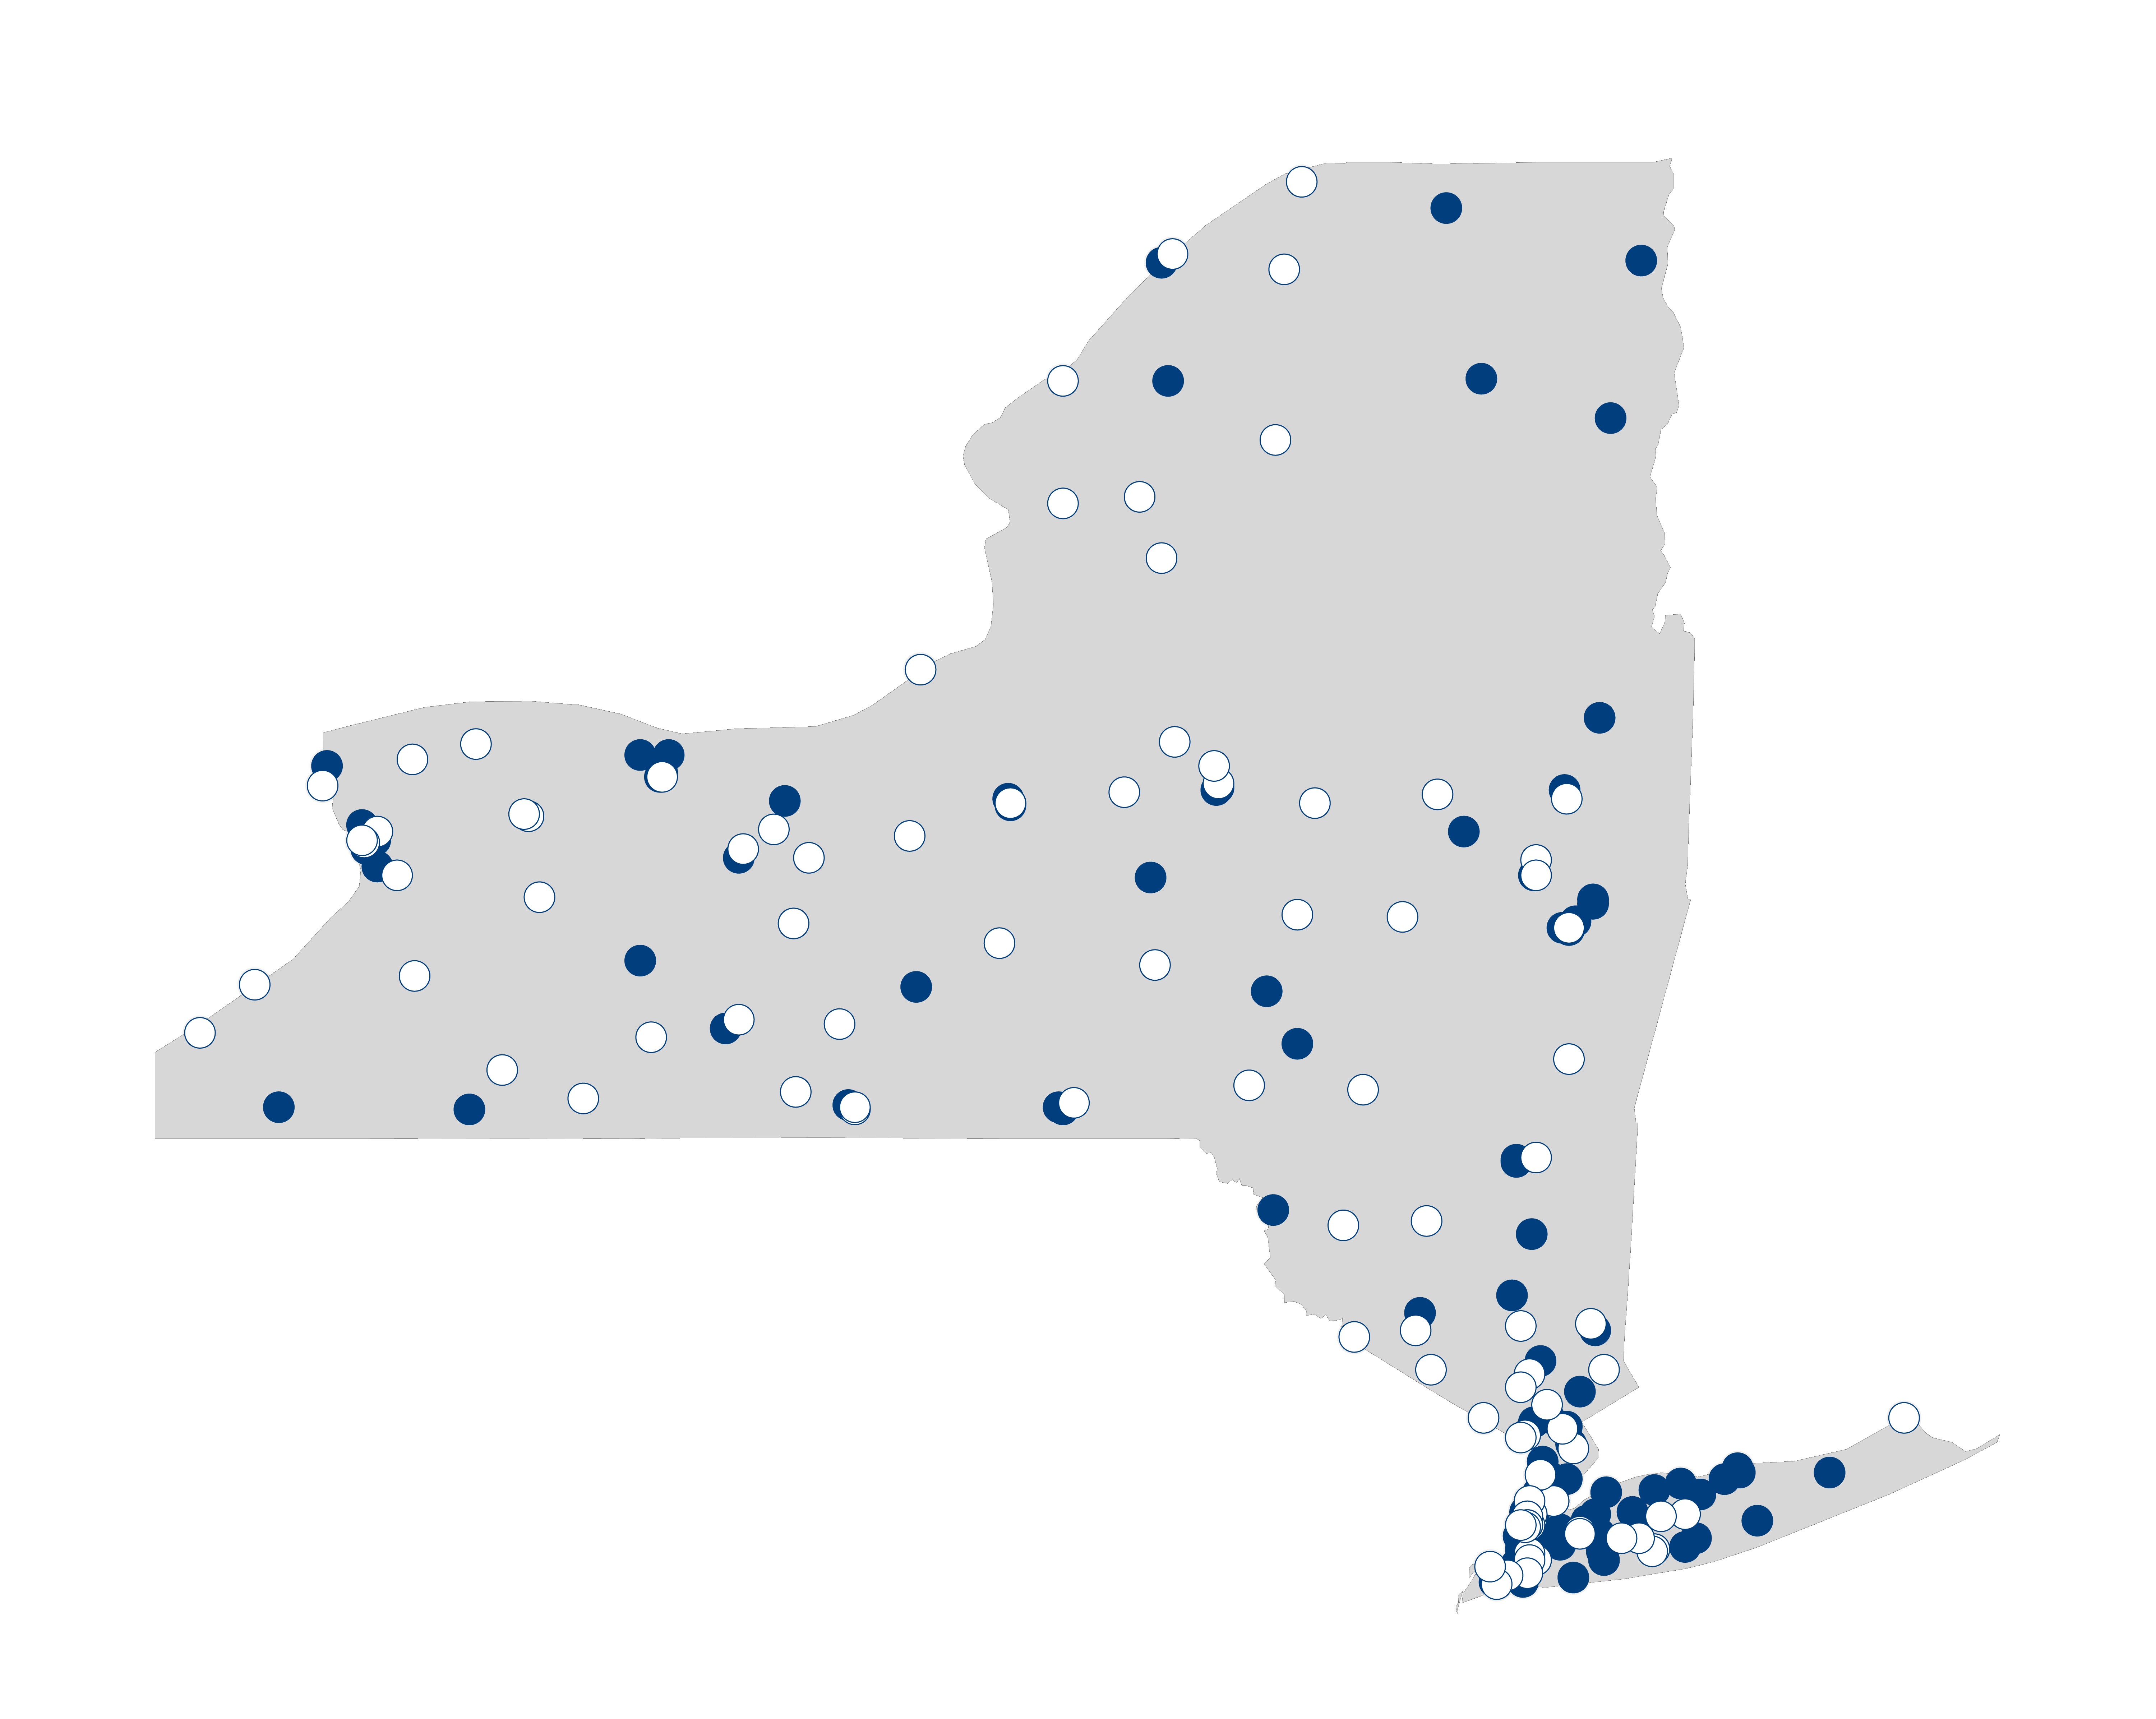 hospital palliative care map for New York